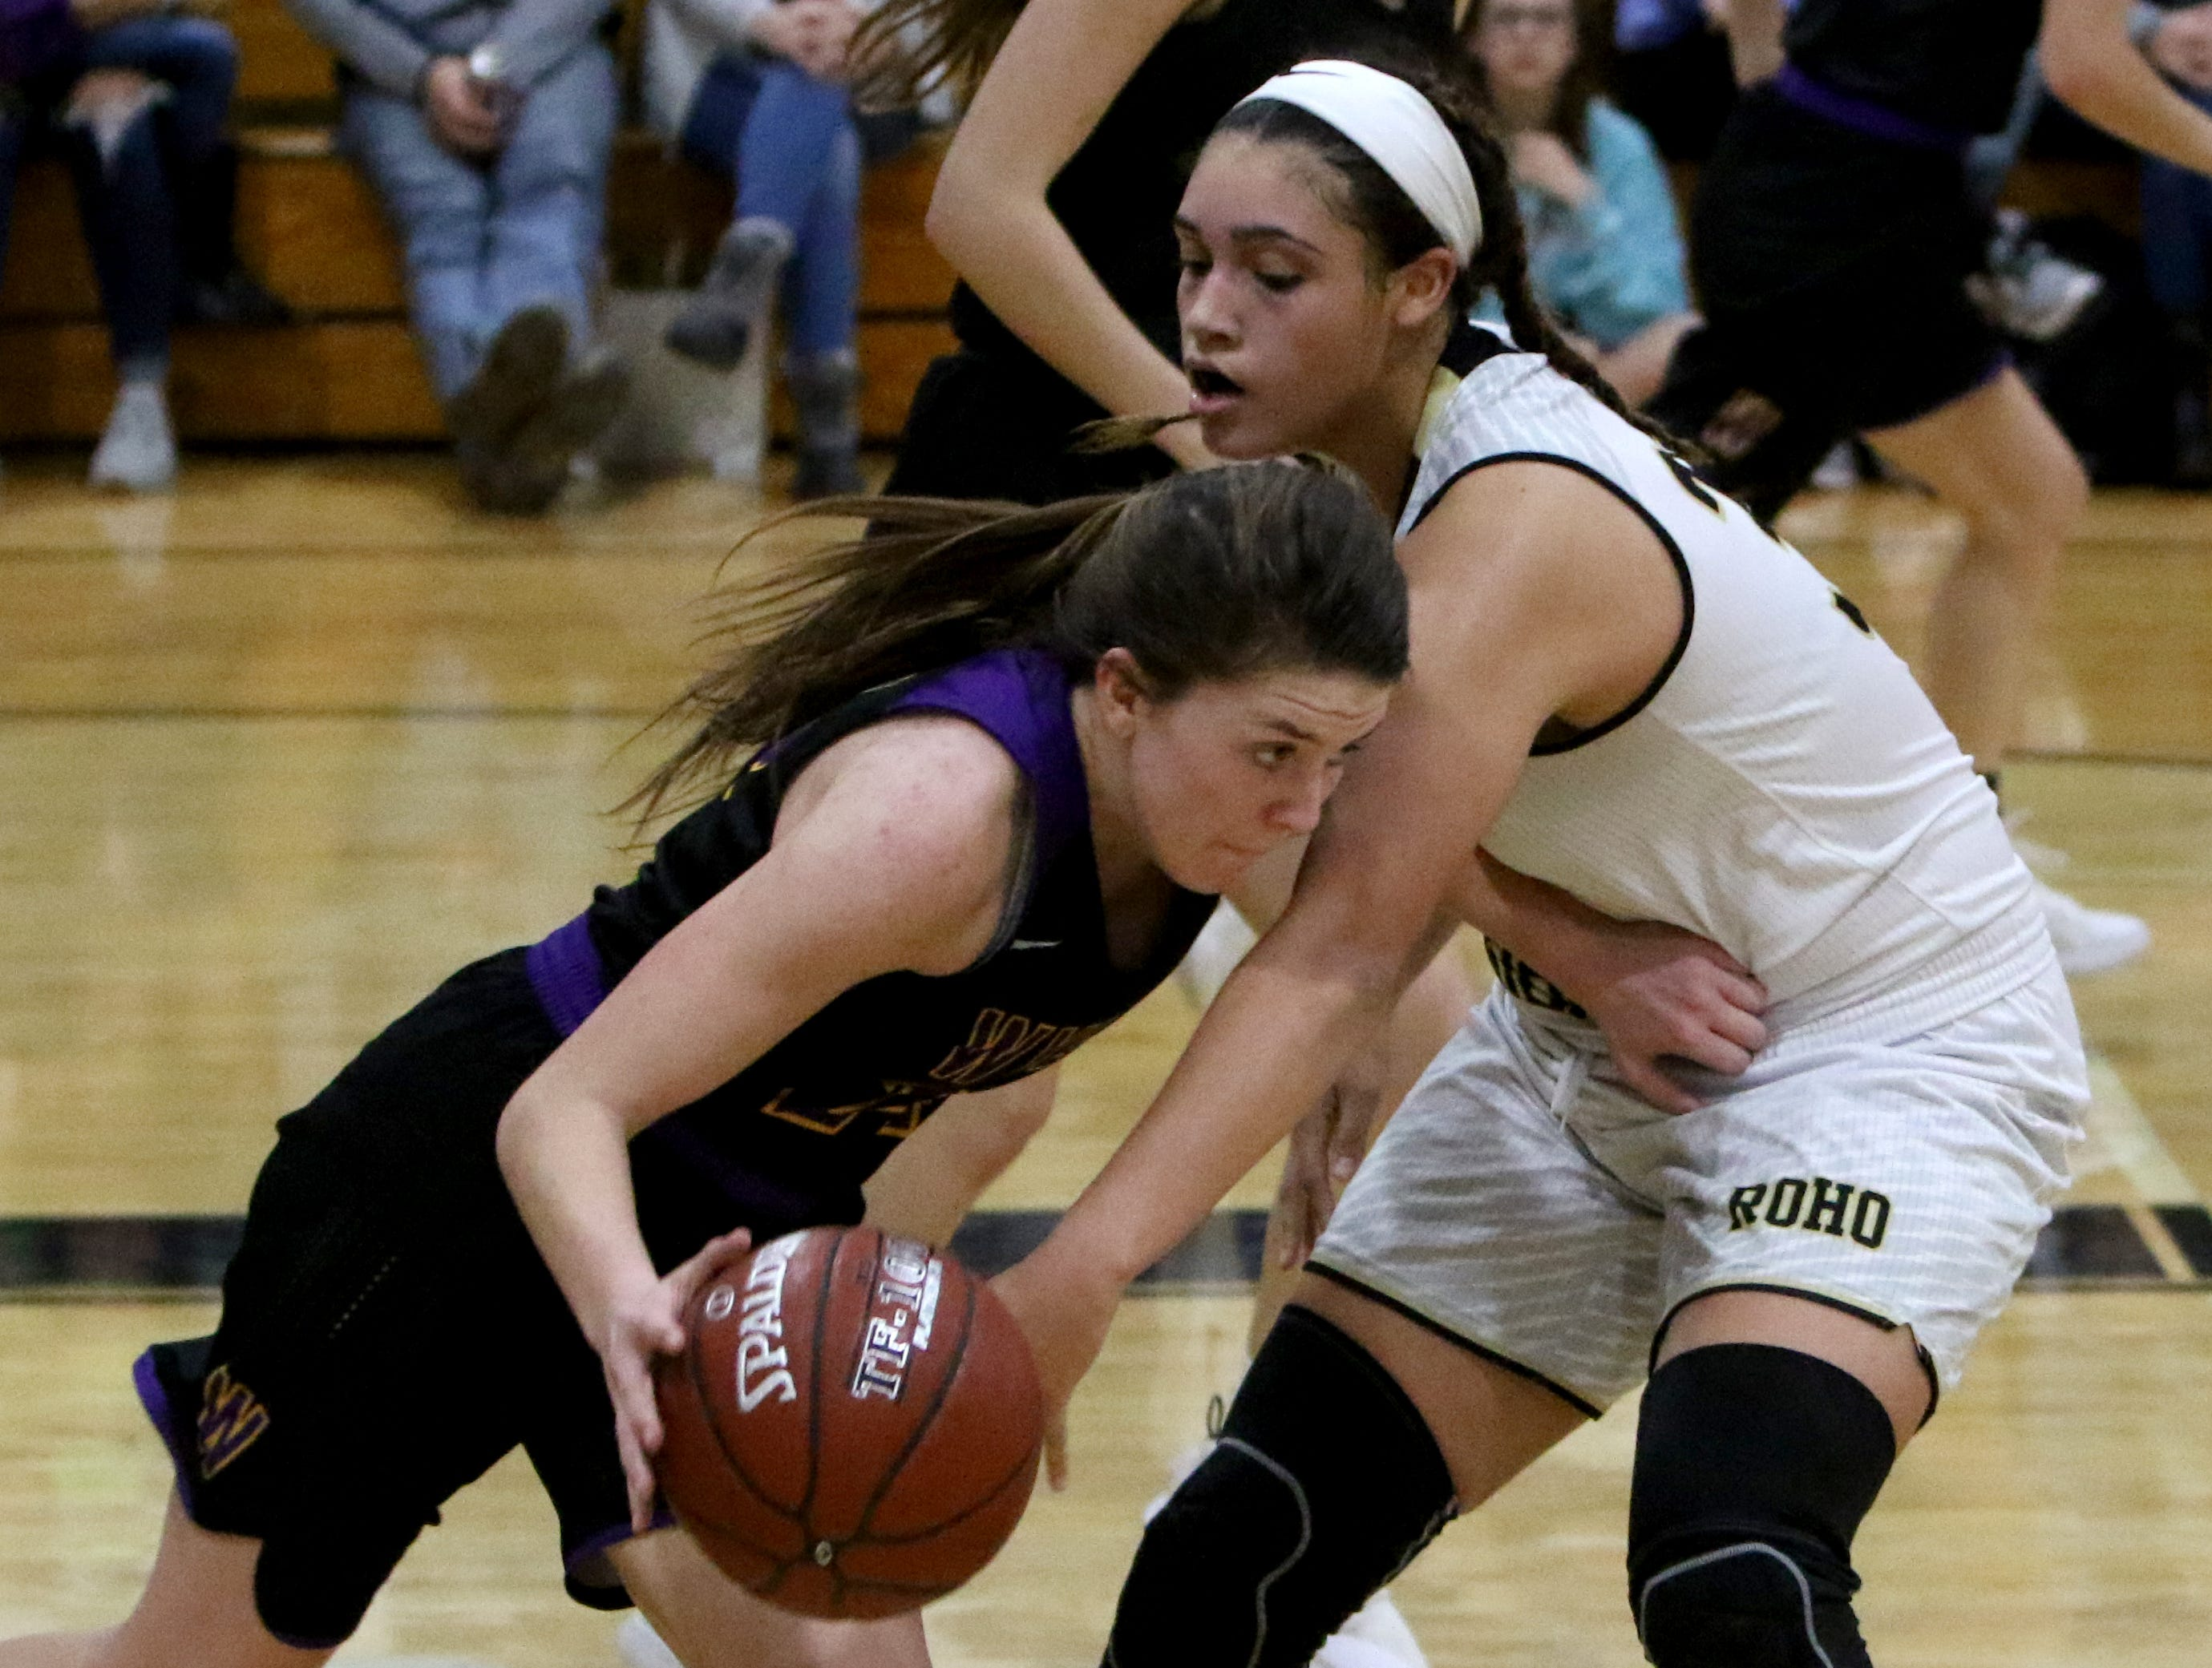 Rider's Addison Self attempts to steal from Abilene Wylie's Mary Lovelace Friday, Jan. 4, 2019 at McNiel Middle School.